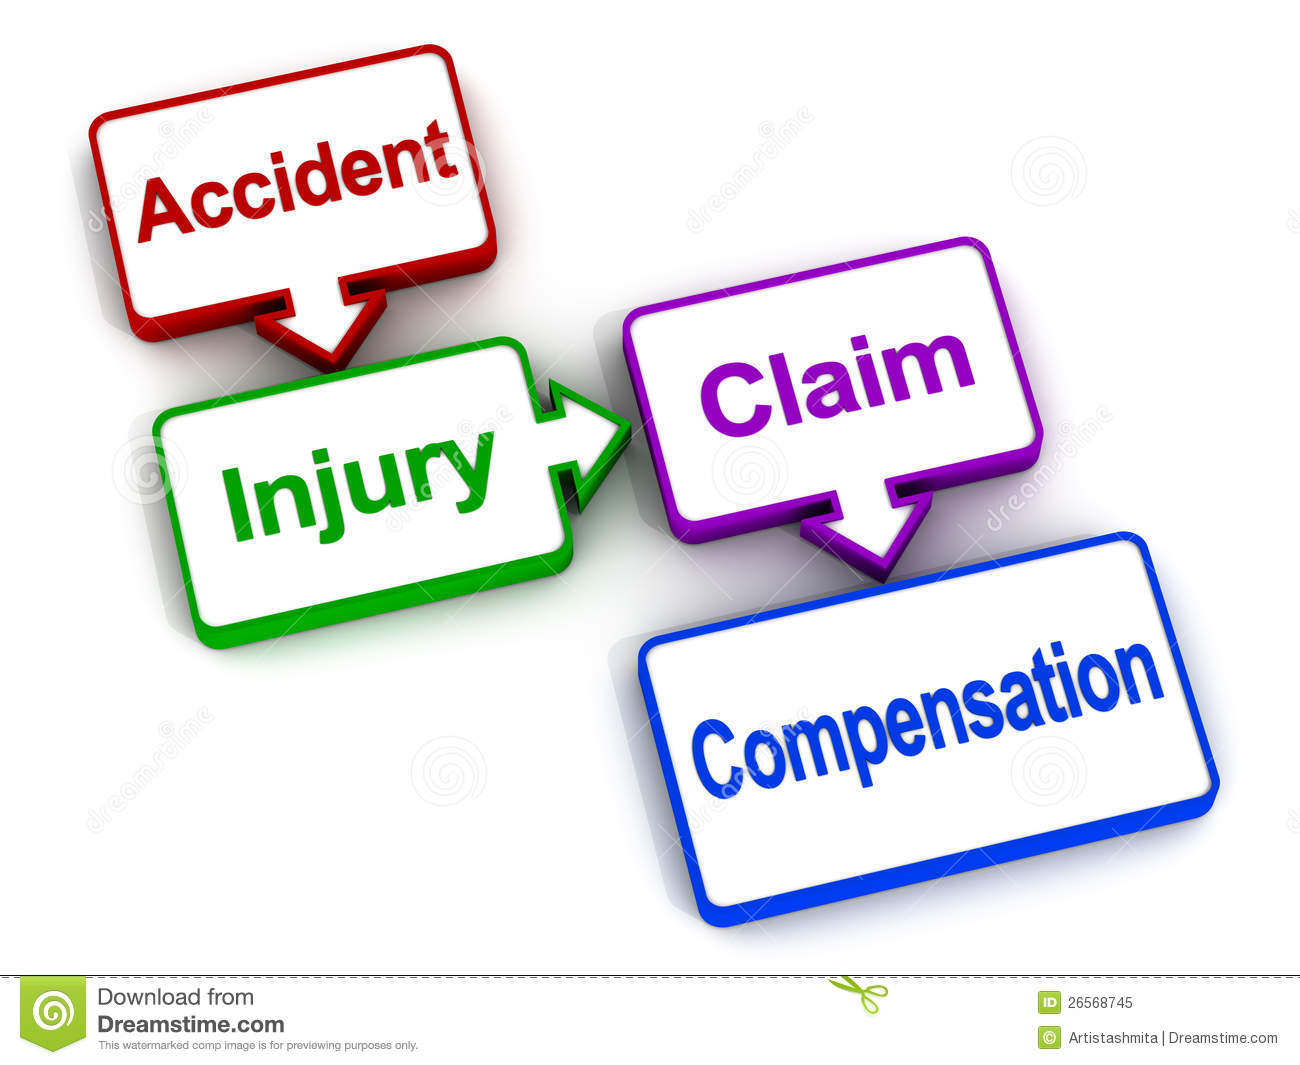 Accident injury policy